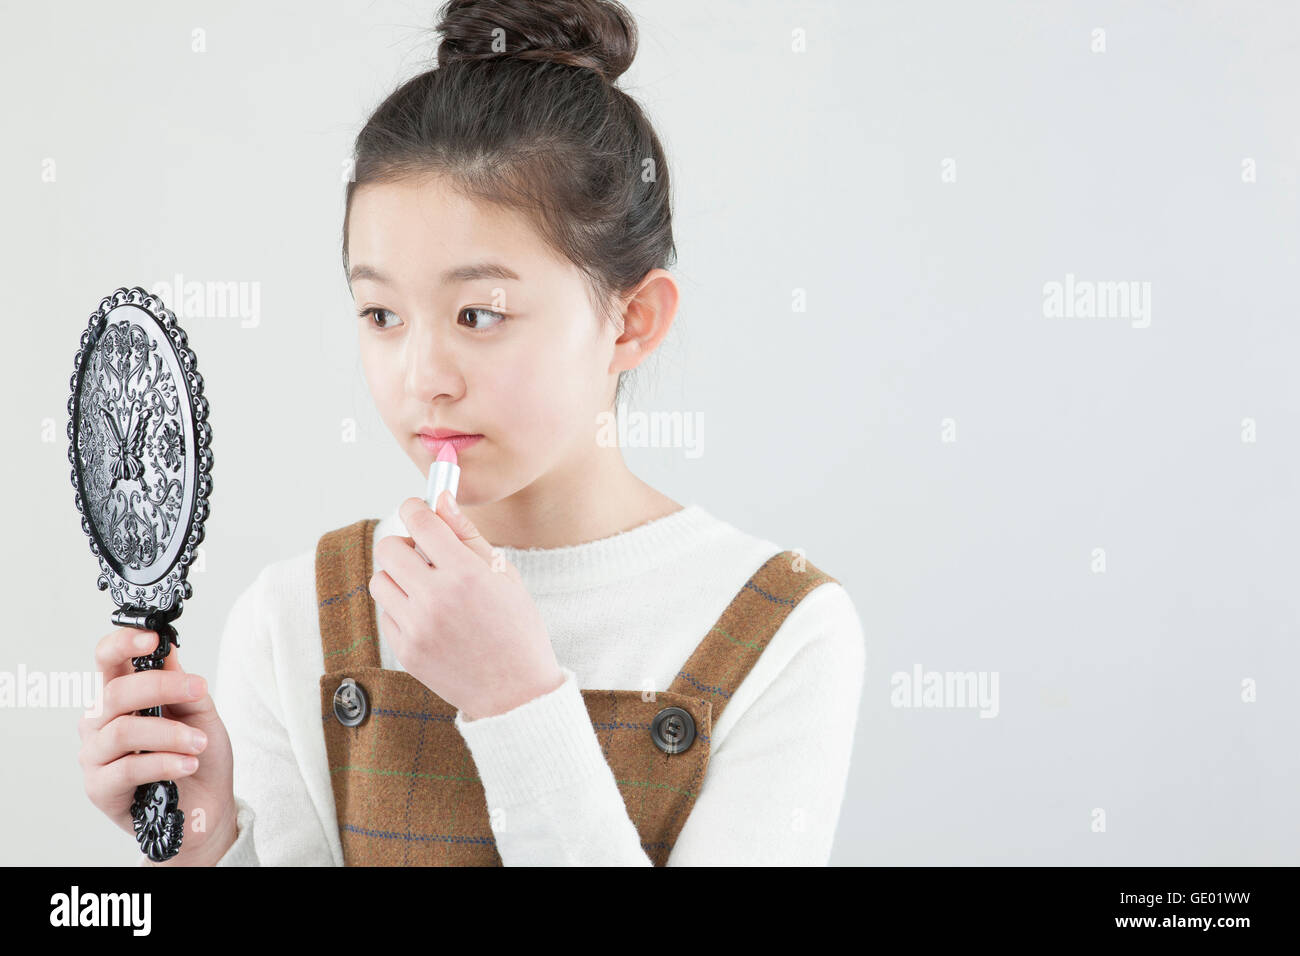 hand holding mirror. Side View Portrait Of Korea School Girl Holding A Hand Mirror And Putting  On Make- T